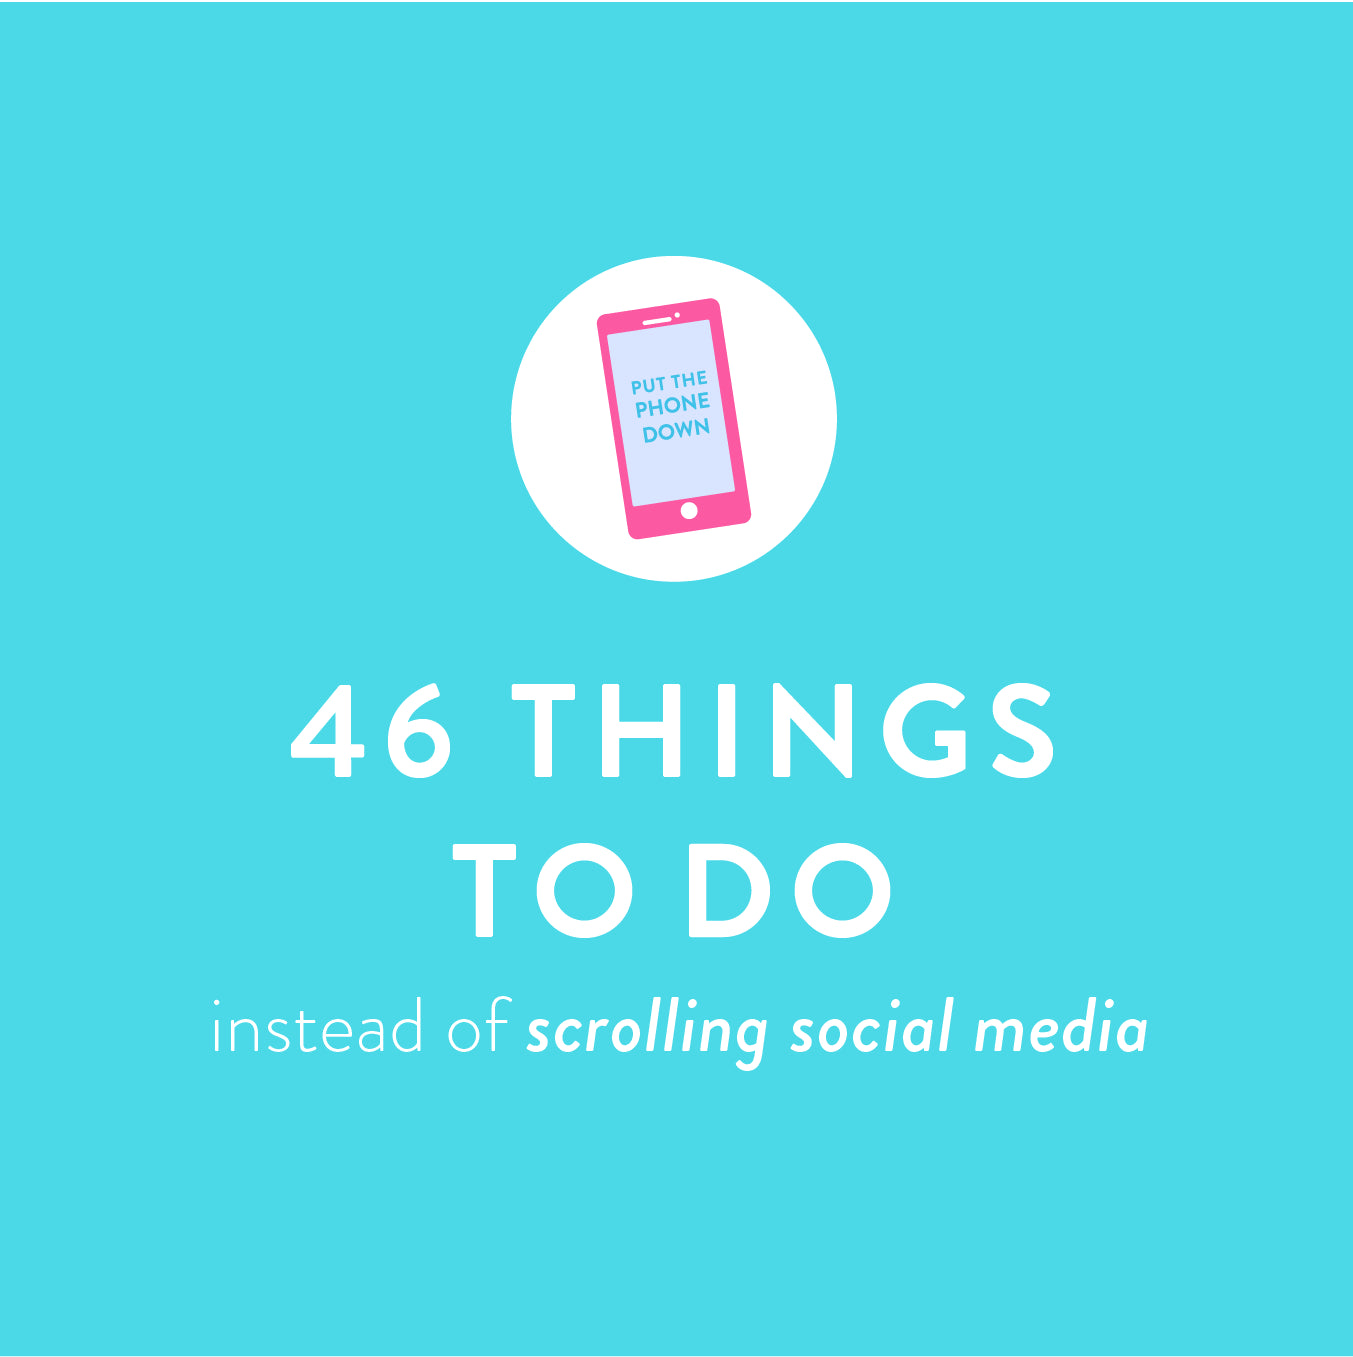 46 Productive Things to Do Instead of Scrolling Social Media